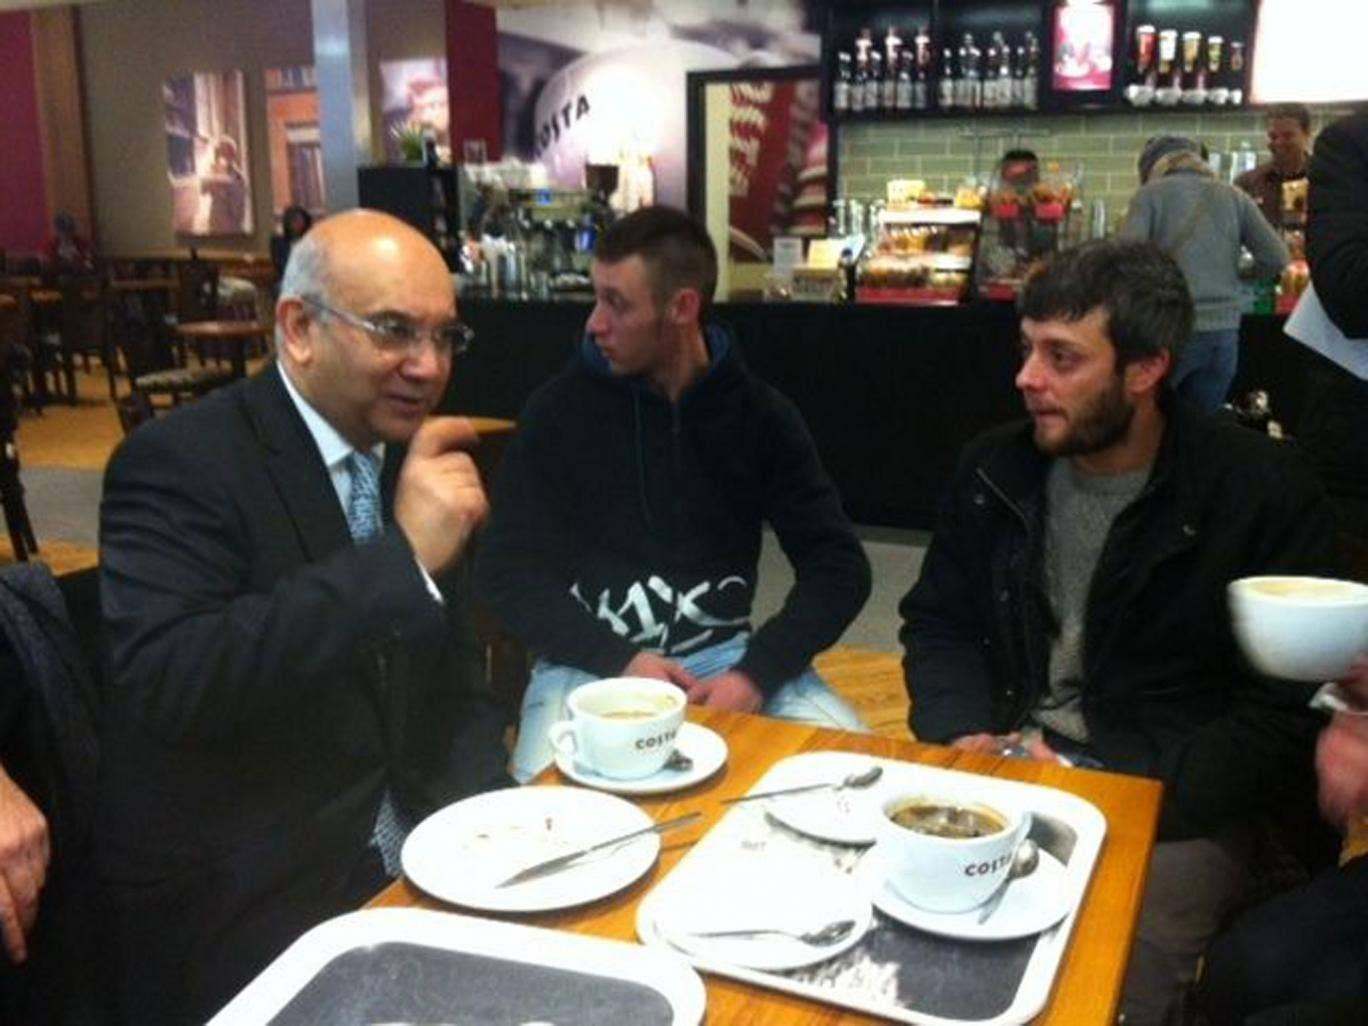 Romanians landing at Luton Airport were surprised to be greeted by Home Affairs Select Committee chairman Keith Vaz. However, many Britons have been heading out in the opposite direction.